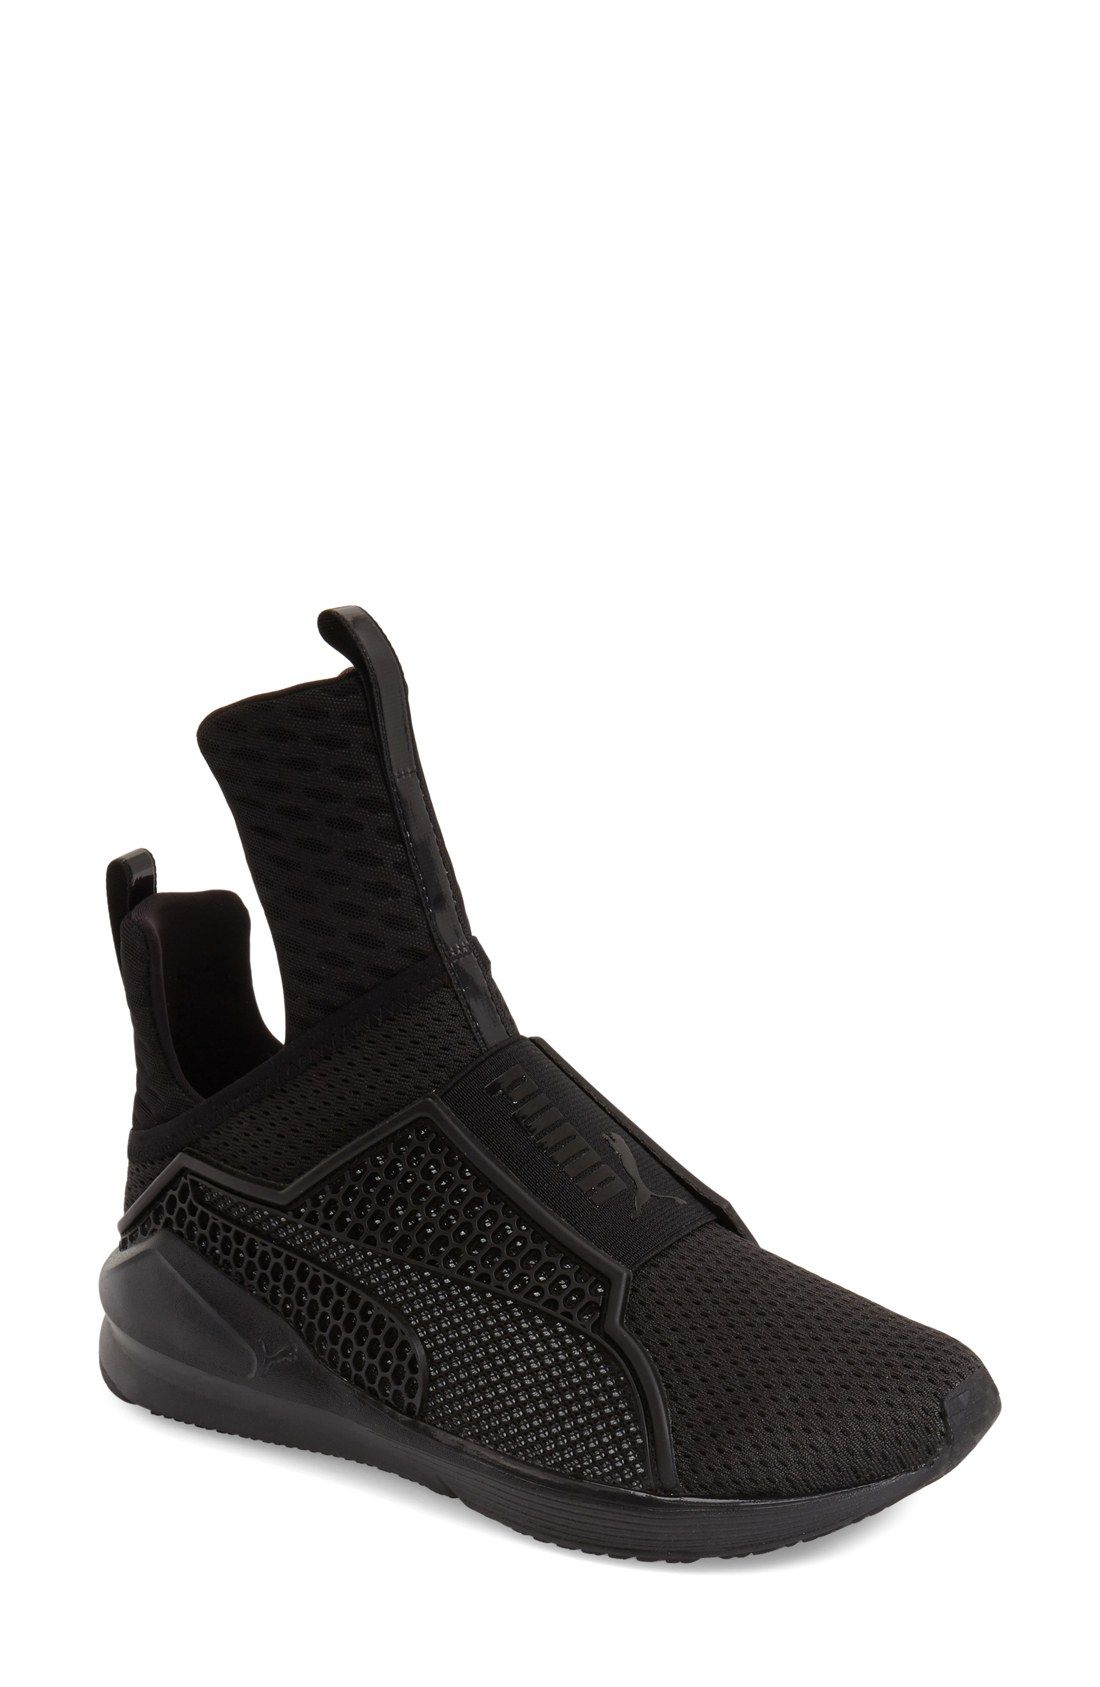 e837ca5cd92 puma fenty trainer women black cheap   OFF76% Discounted